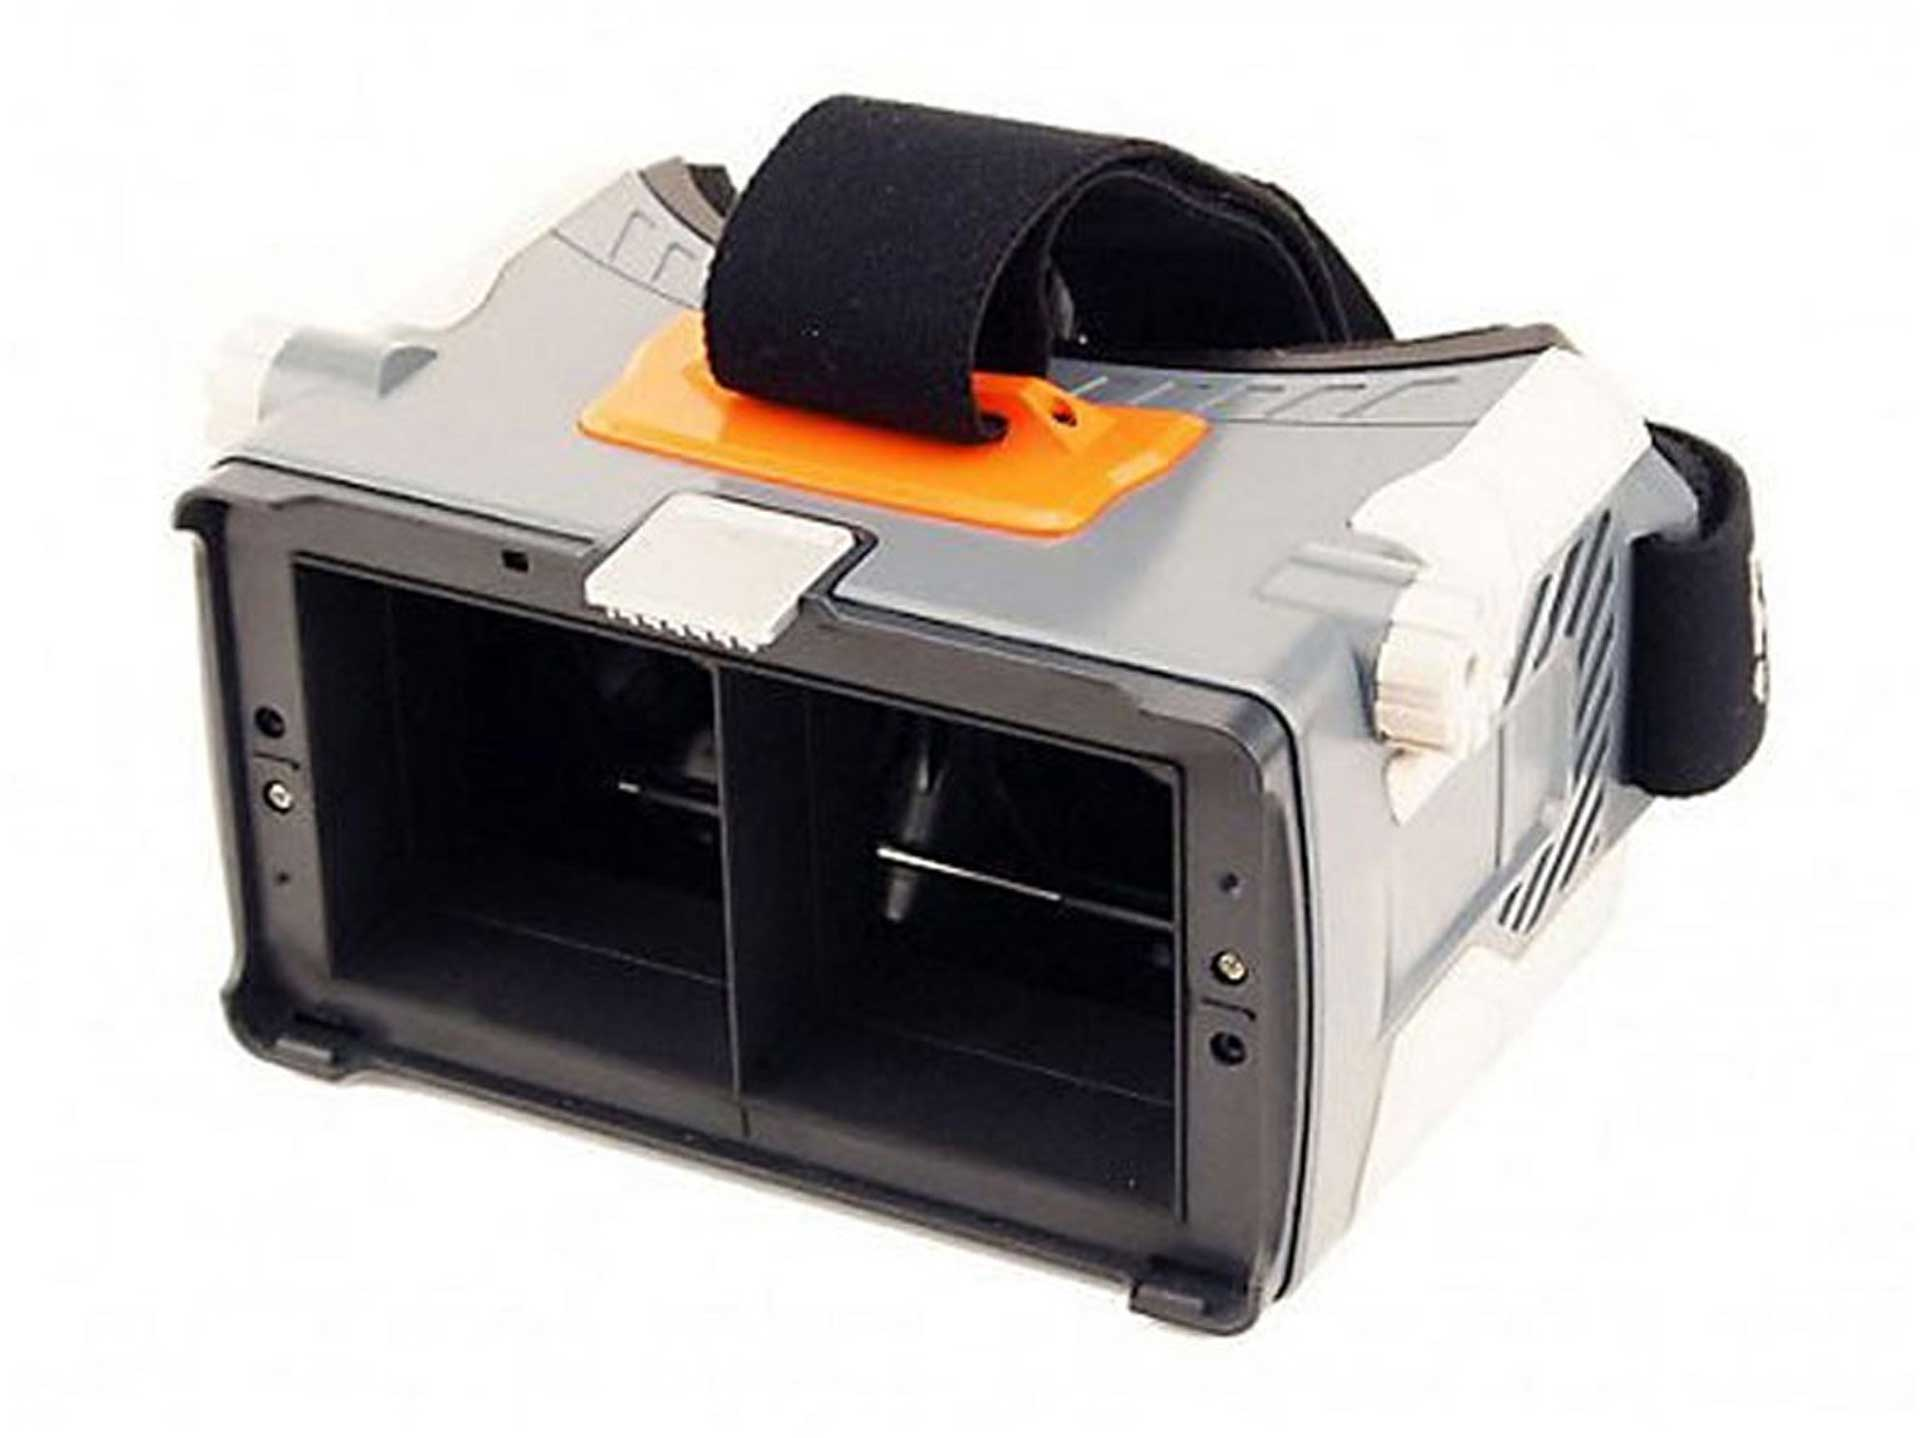 FAT SHARK TRANSFORMER BINOCULAR VIEWER